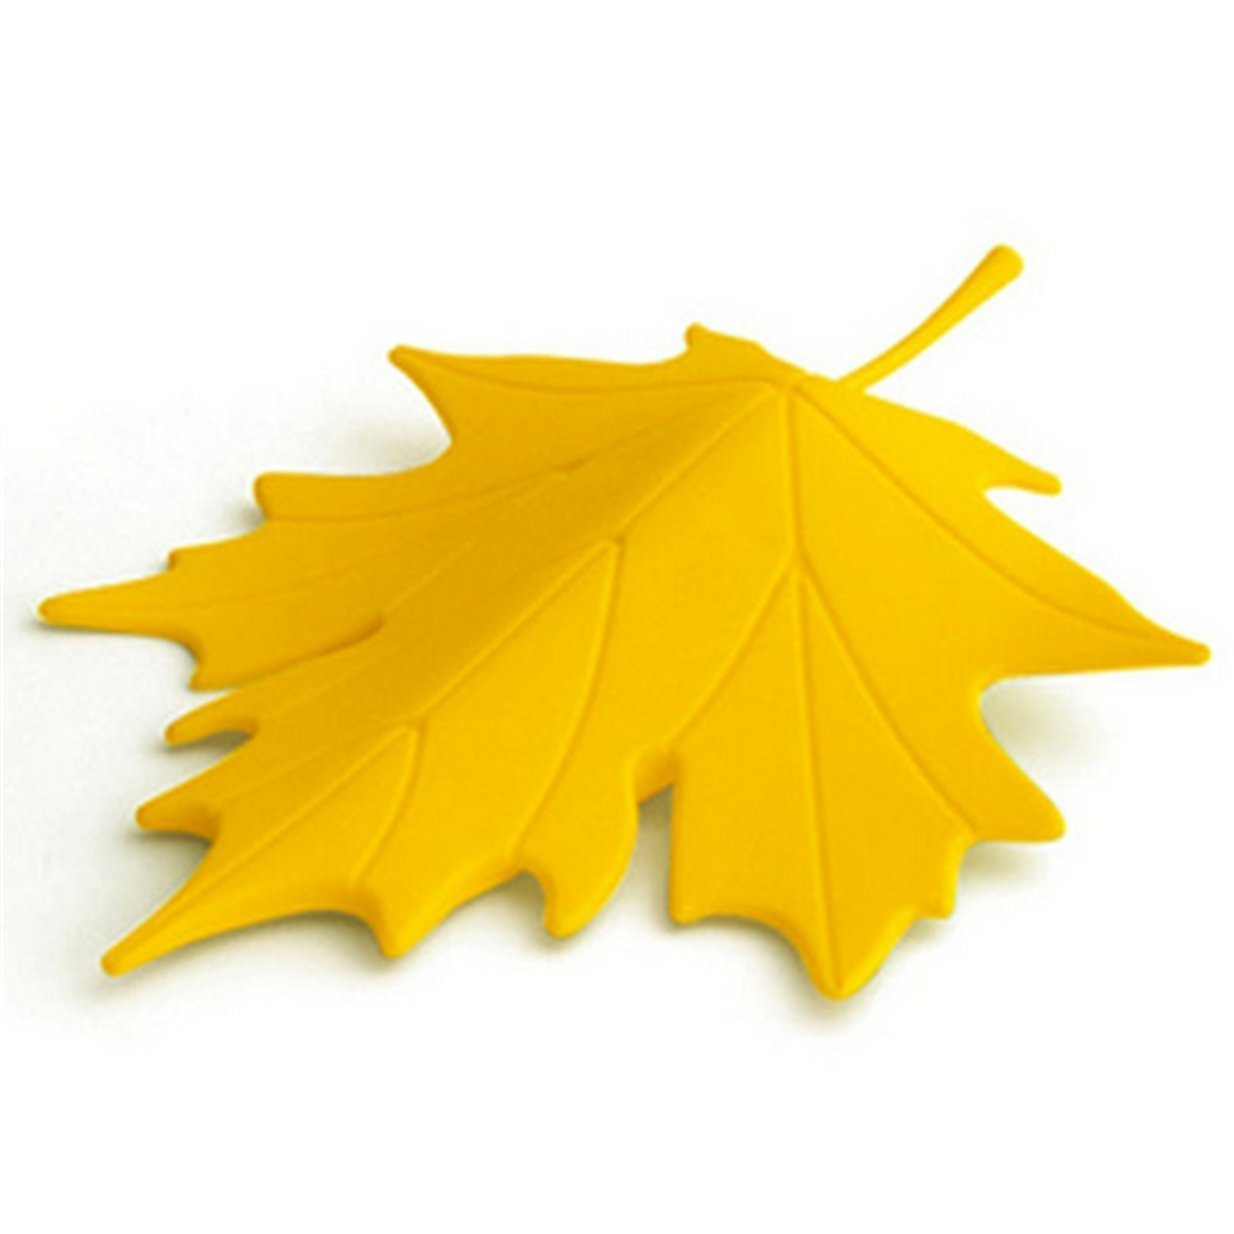 Lalang Home dekorative Autumn Maple Leaf Ornament Tür Stopper Türstopper für Schutz Kid (orange)